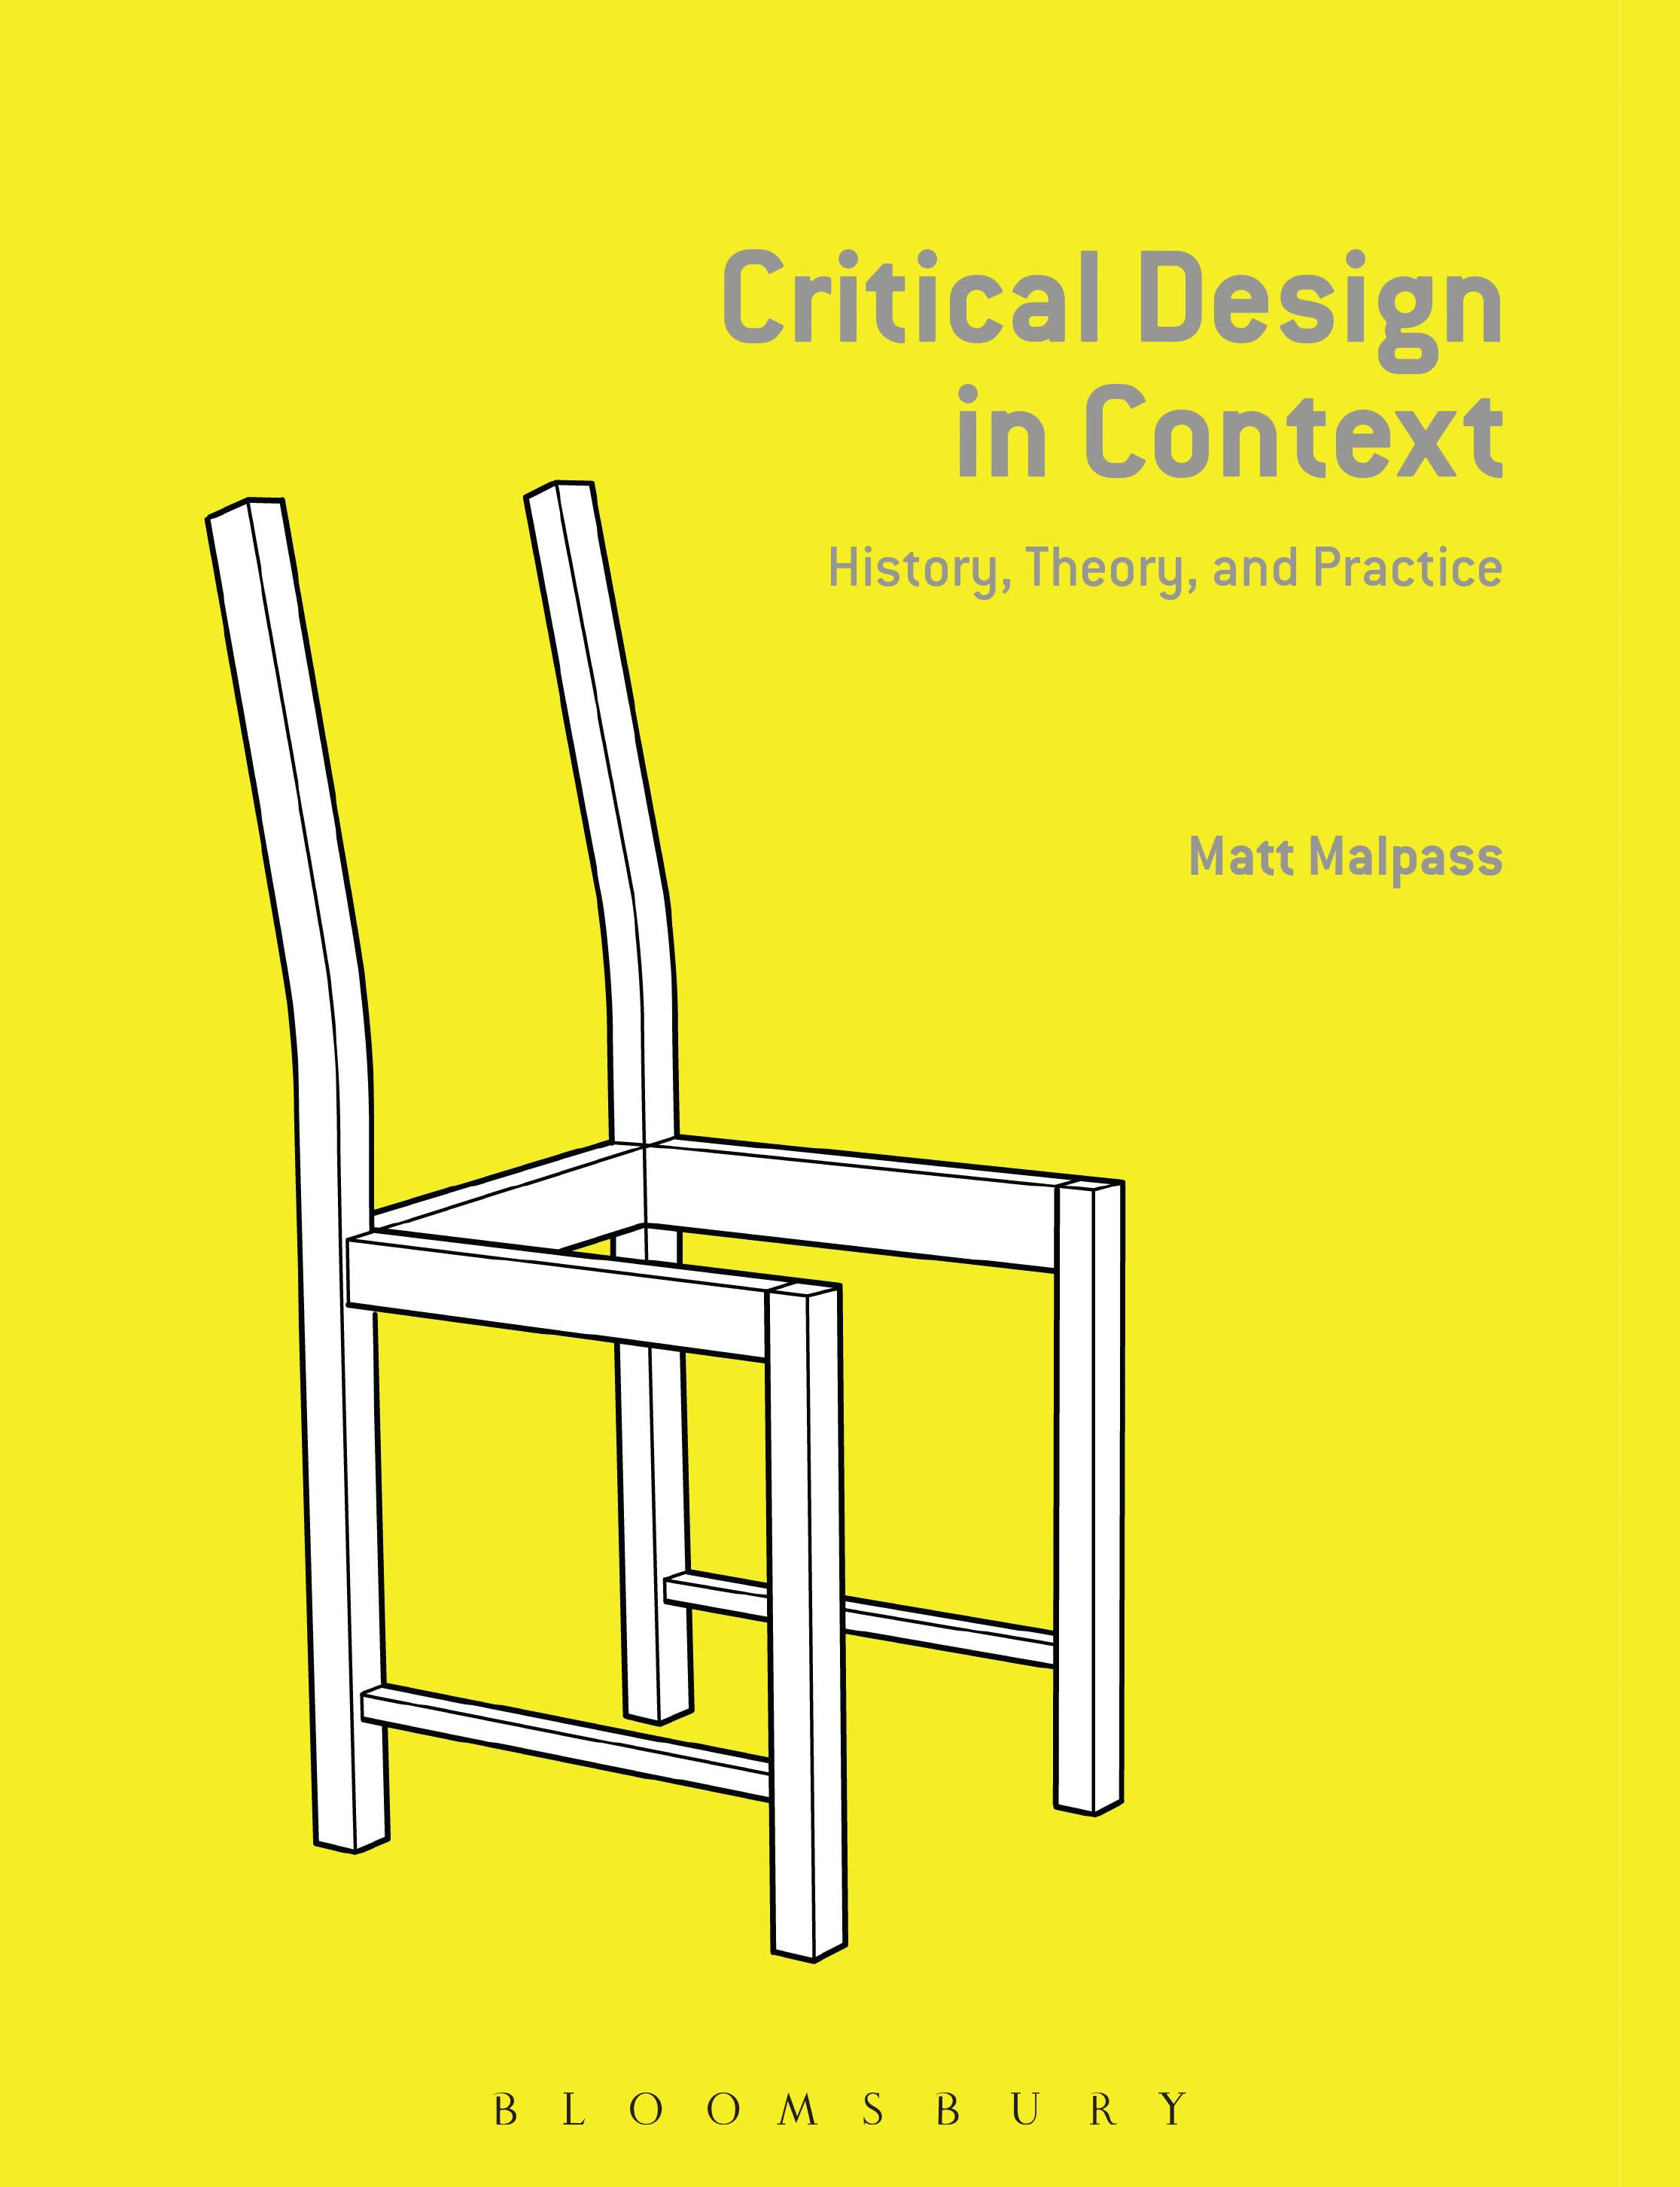 The cover of Critical Design in Context: History, Theory, and Practice.